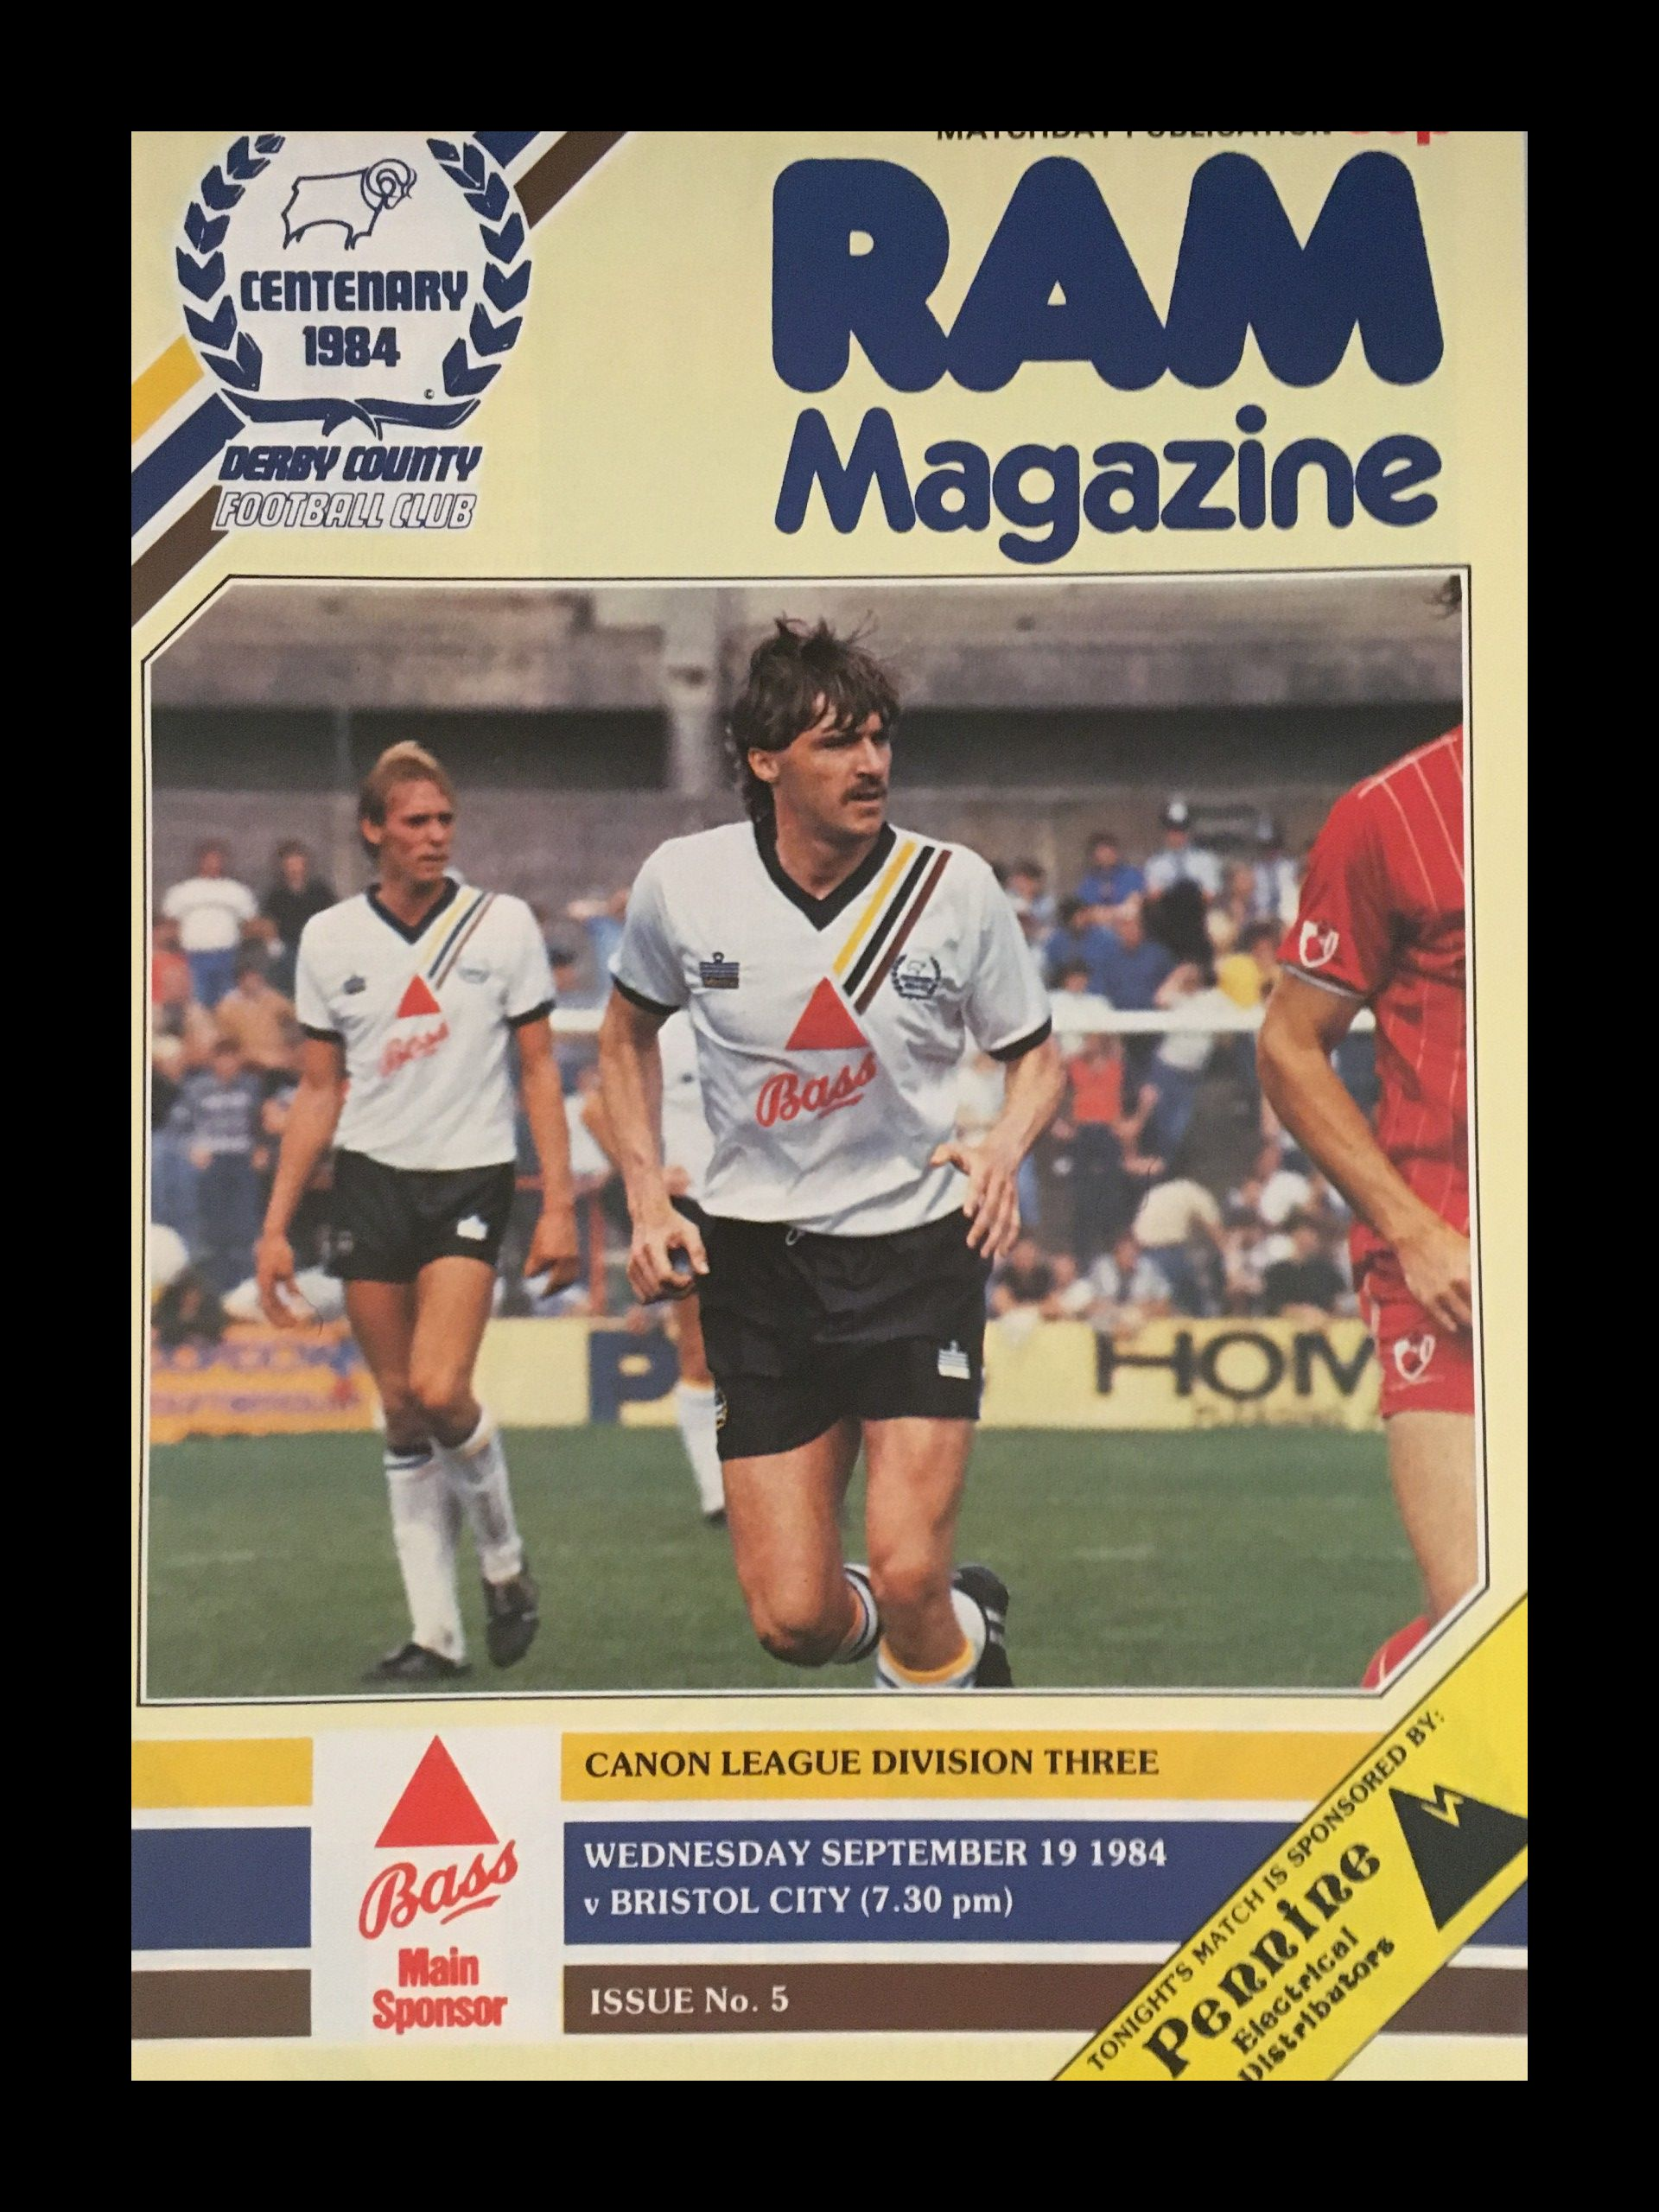 Derby County v Bristol City 19-09-84 Programme